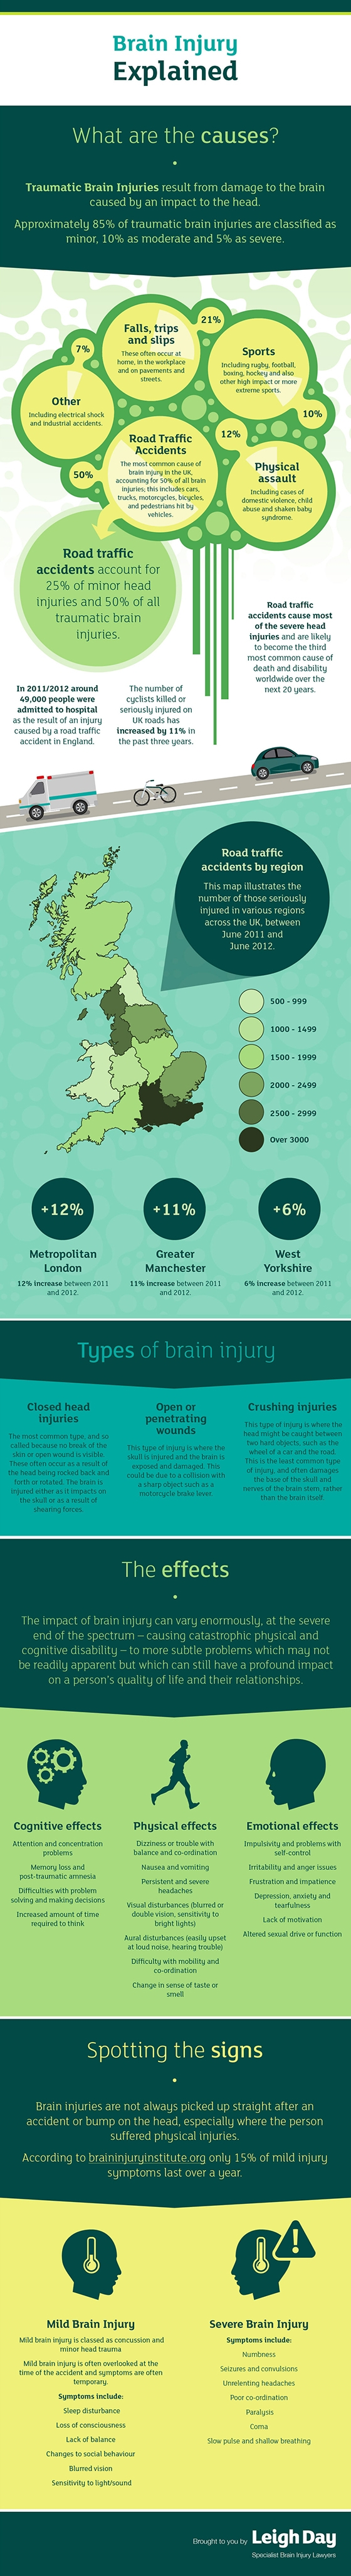 Infographic: Brain Injury Explained